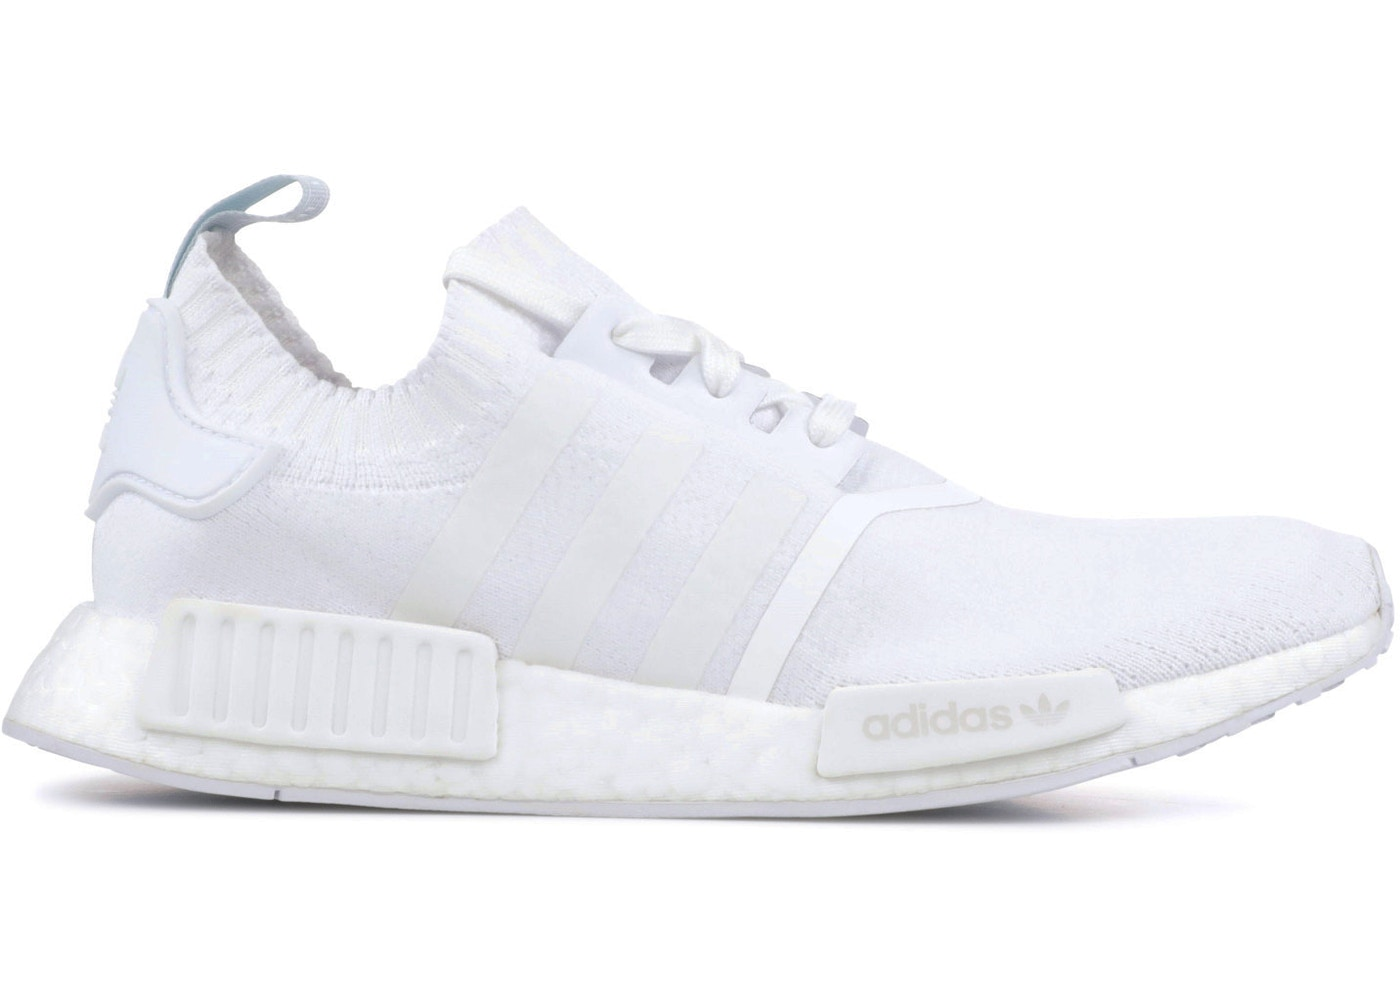 Adidas Nmd R1 Cloud White W Cq2040